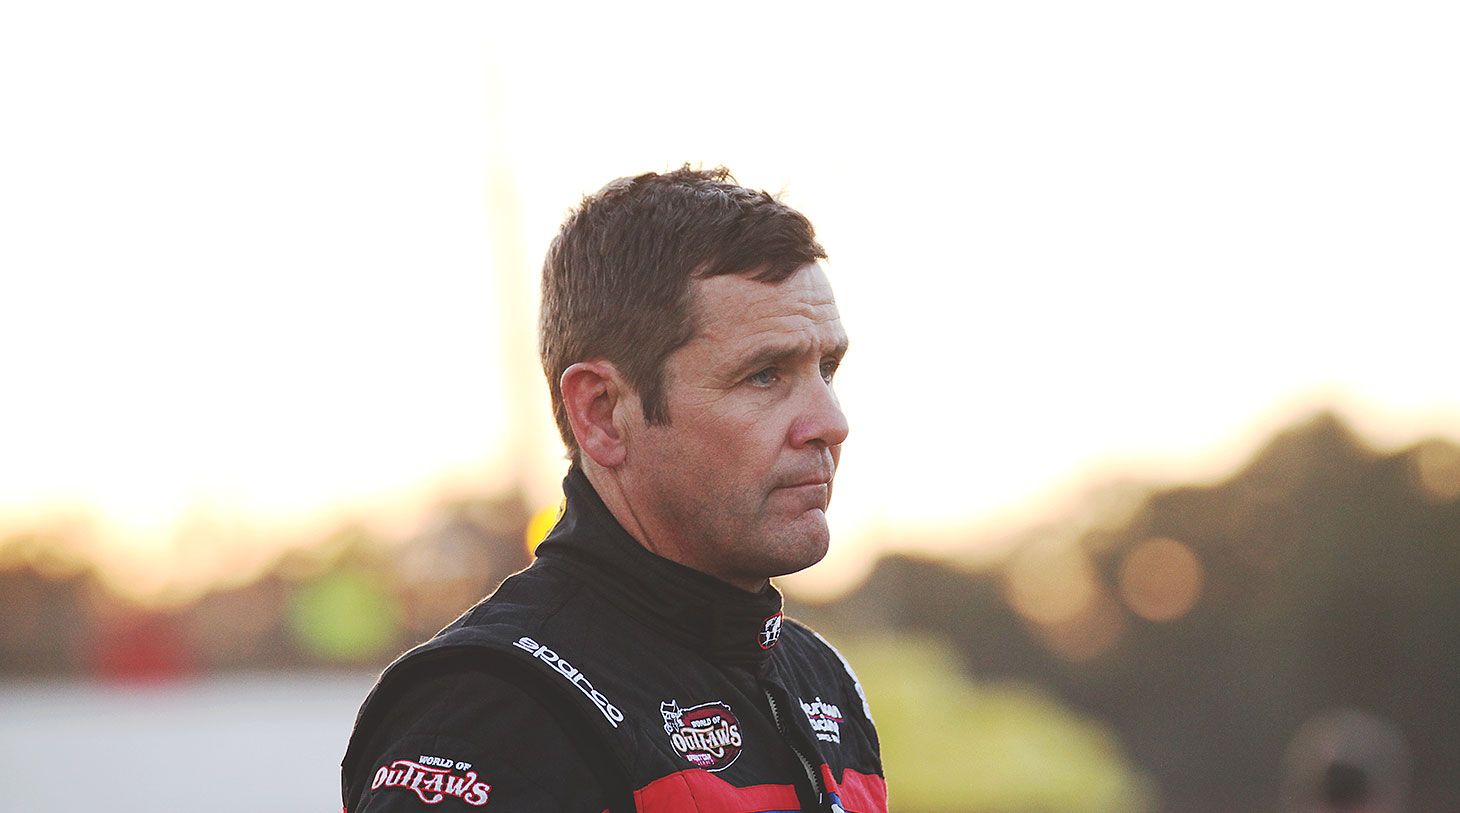 Kerry Madsen is one of Australia's most successful Sprint car drivers | photo: Jeffrey Turford